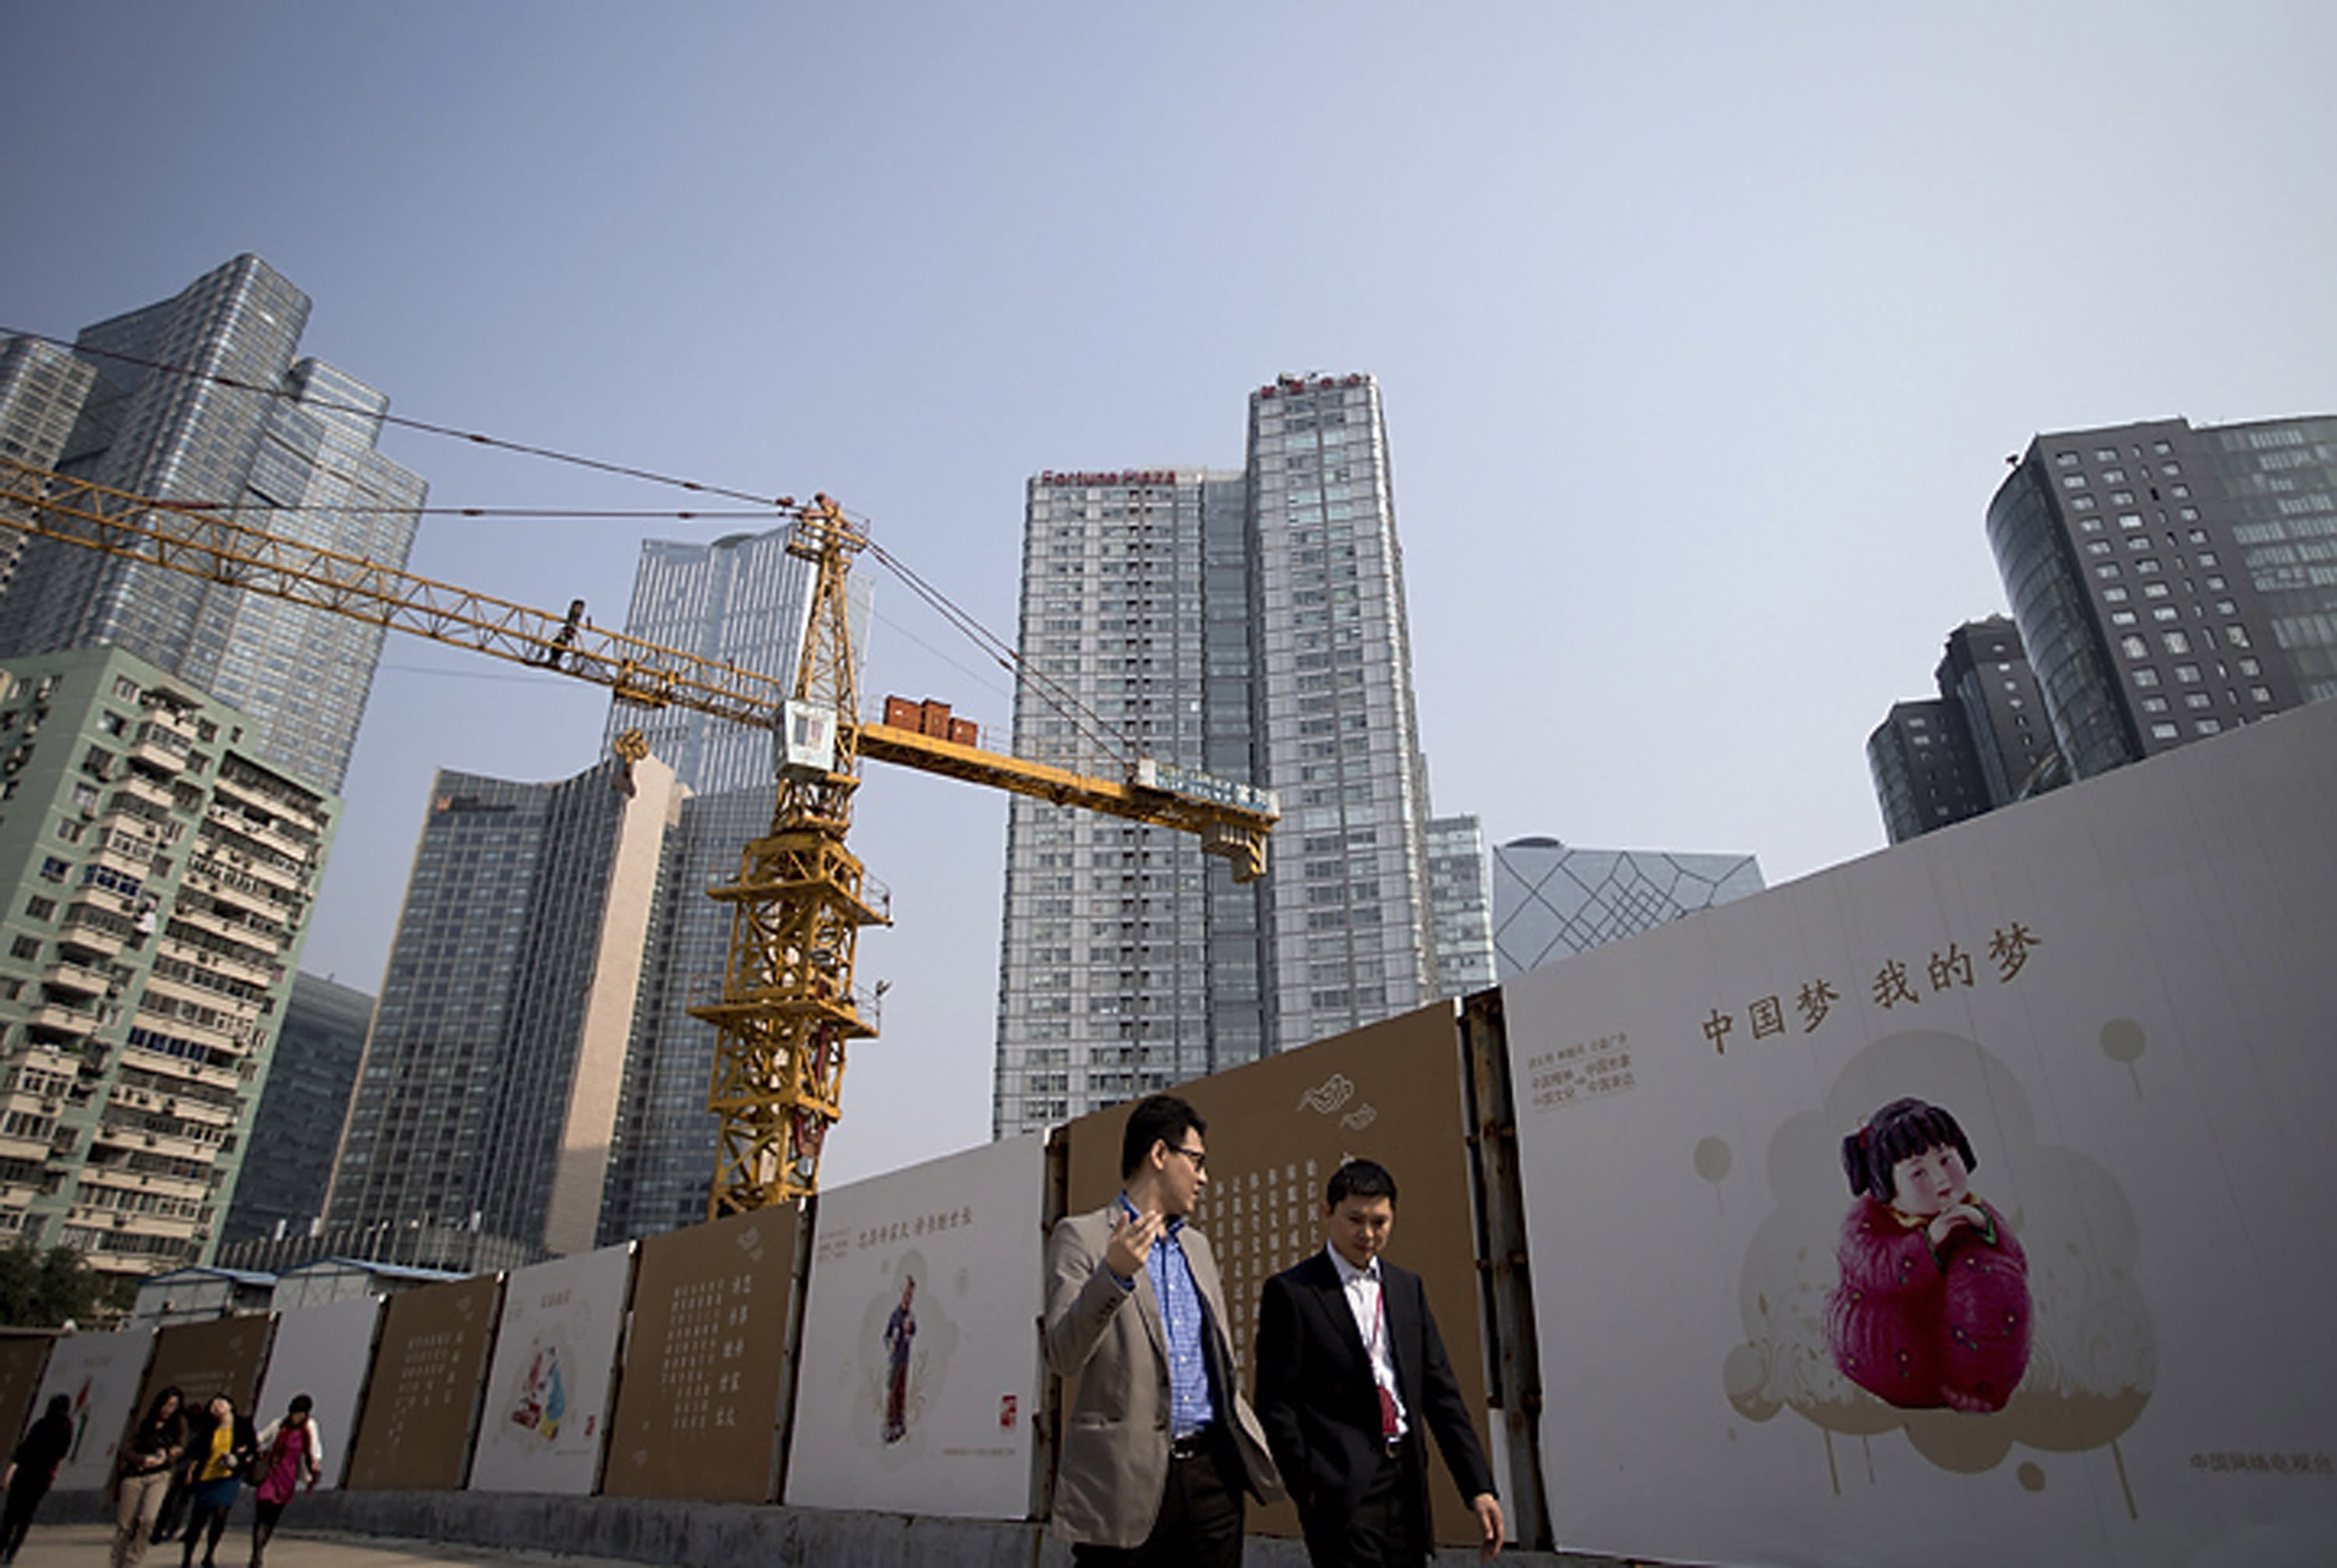 FILE - In this Oct. 8, 2013 file photo, office workers walk past China Dream propaganda boards, showing messages pushed by the current Chinese President Xi Jinping's administration, on display near a construction site in Beijing, China. Economists fear a lending bubble in China could threaten the global economy unless the Chinese government shores up its financial system, according to an Associated Press survey. (AP Photo/Andy Wong, File)